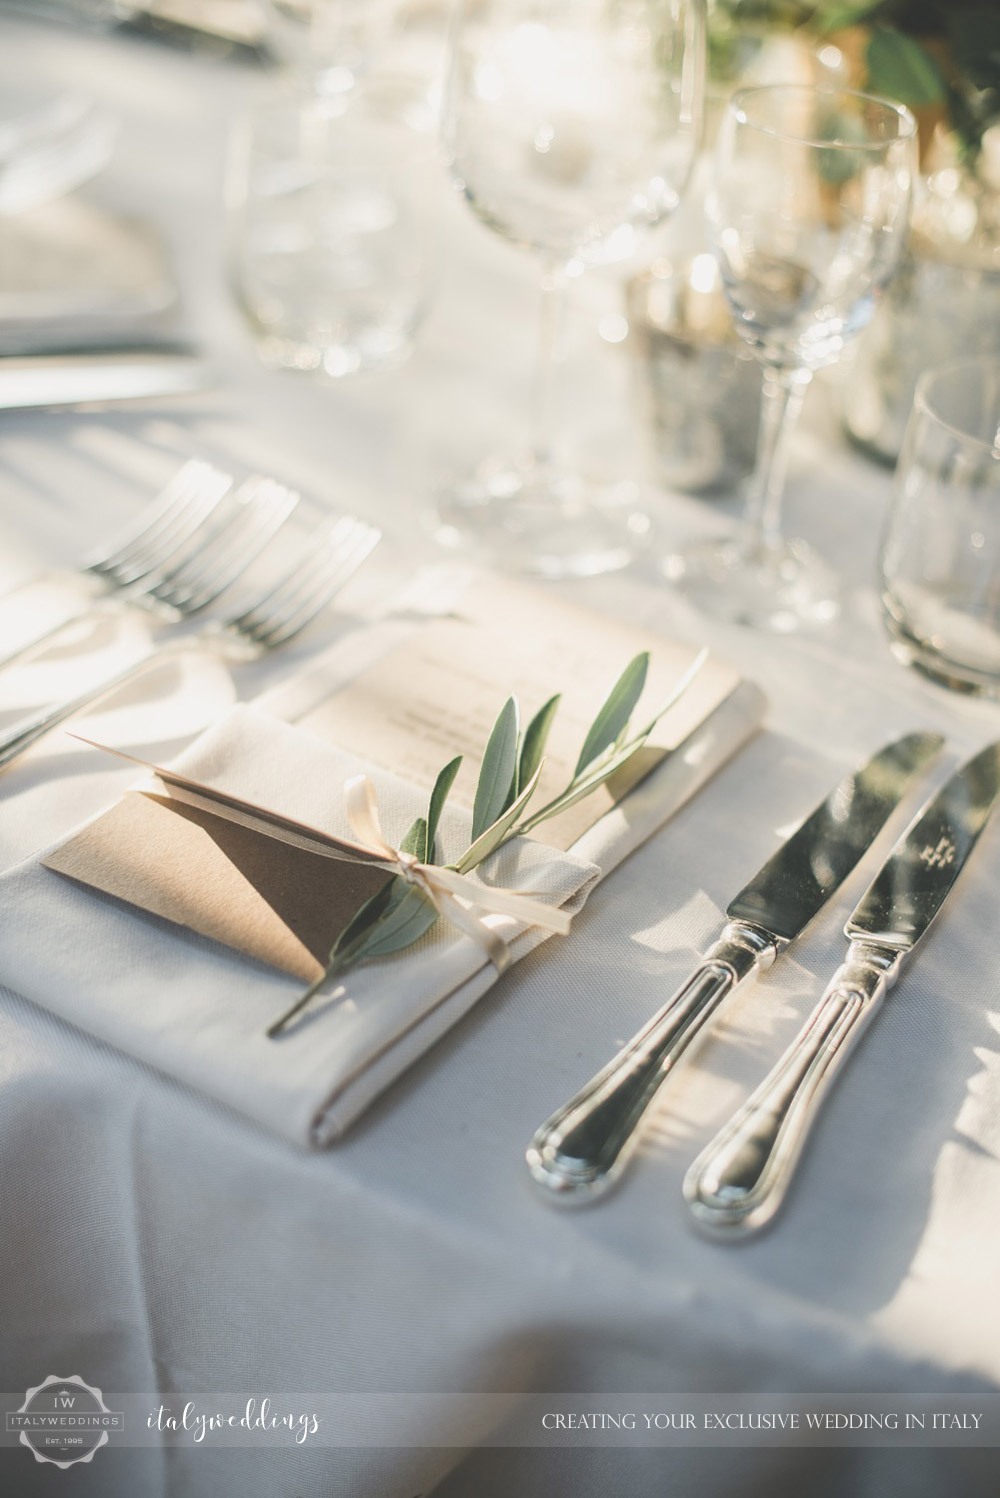 Country civil wedding Siena olive place setting